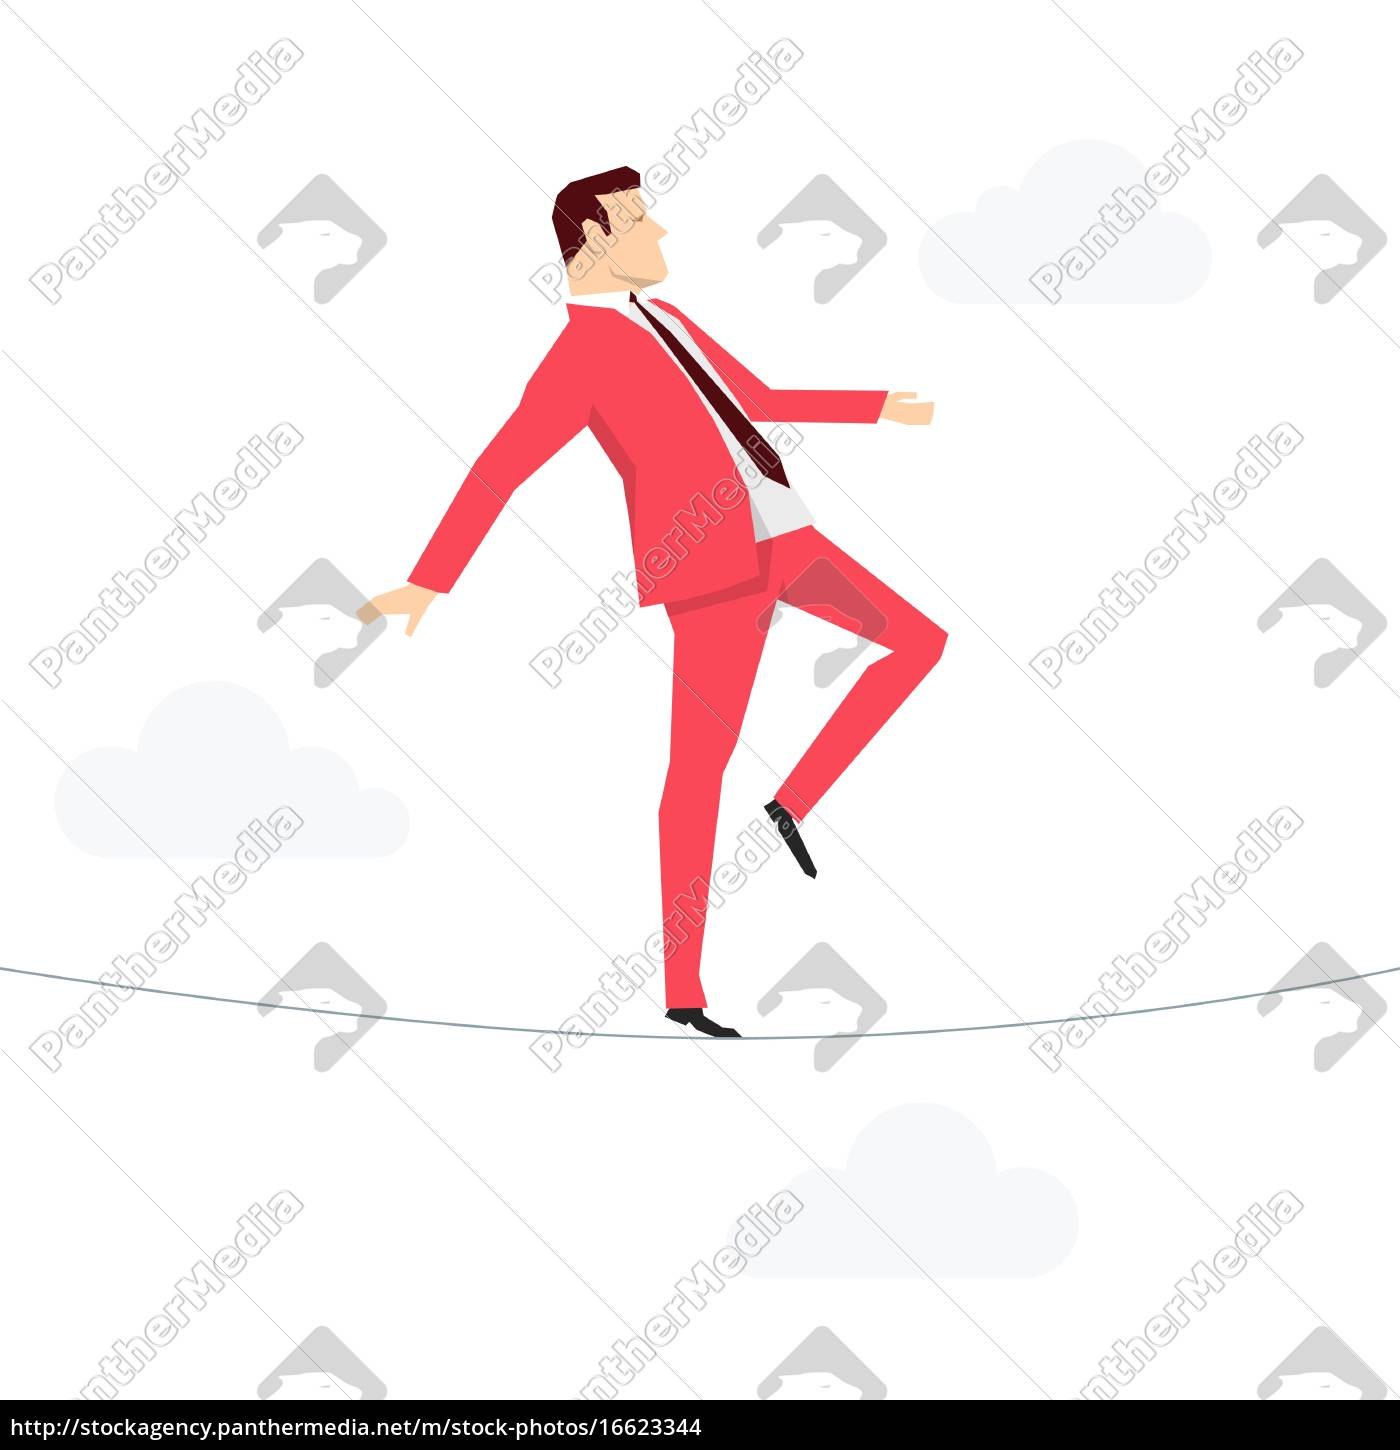 red, suit, businessman. - 16623344